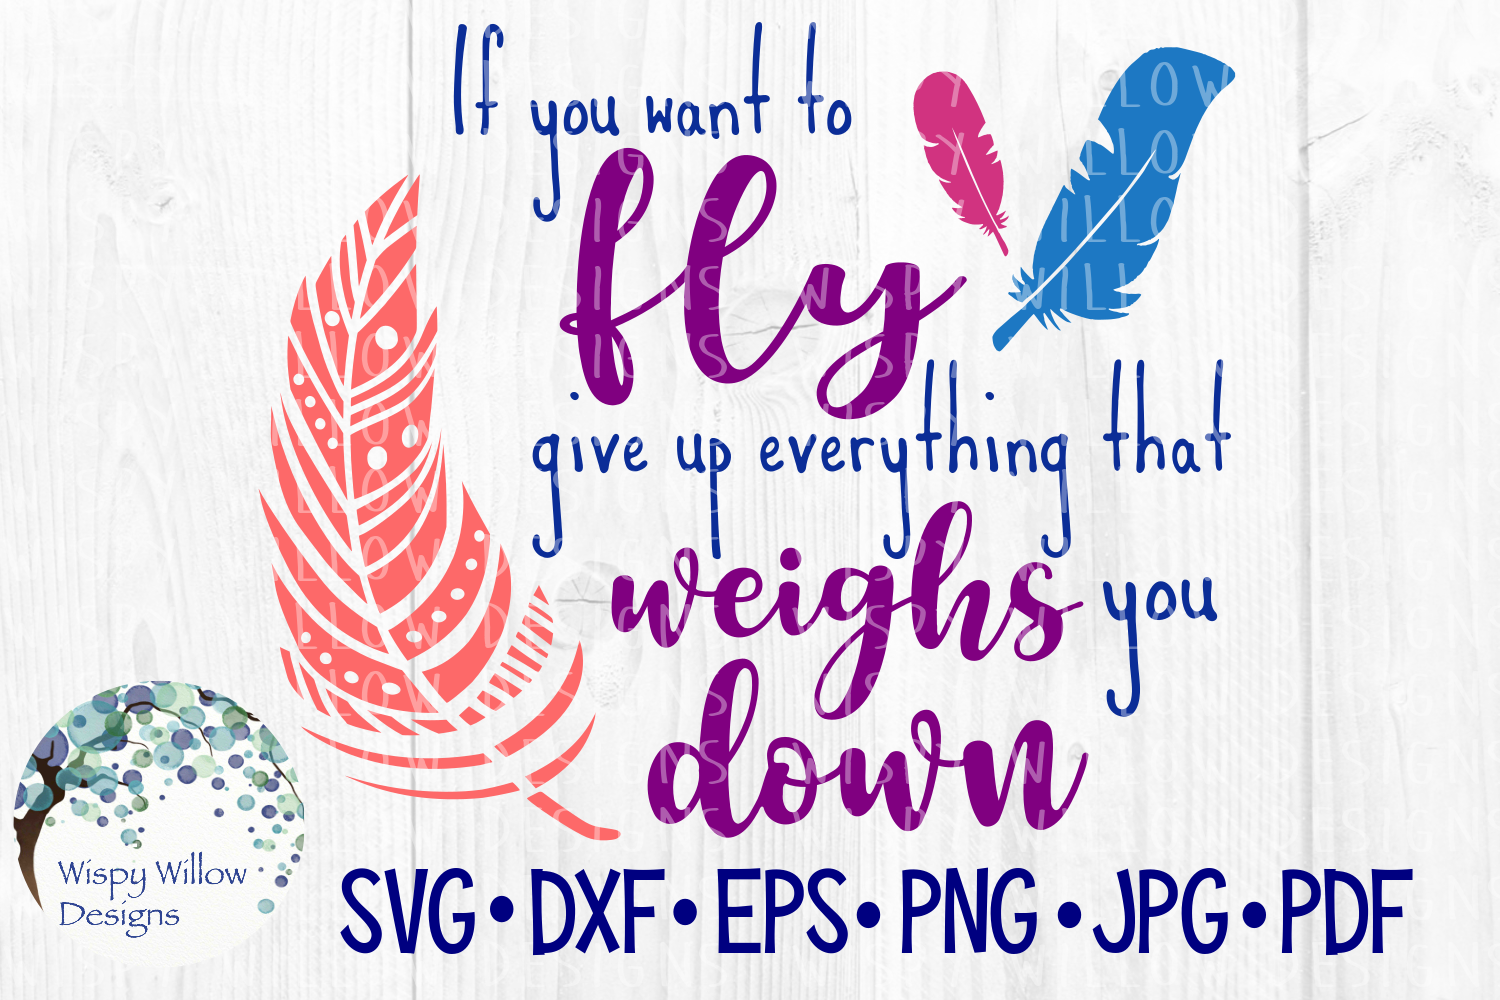 Download Free If You Want To Fly Give Up Everything That Weighs You Down SVG Cut Files